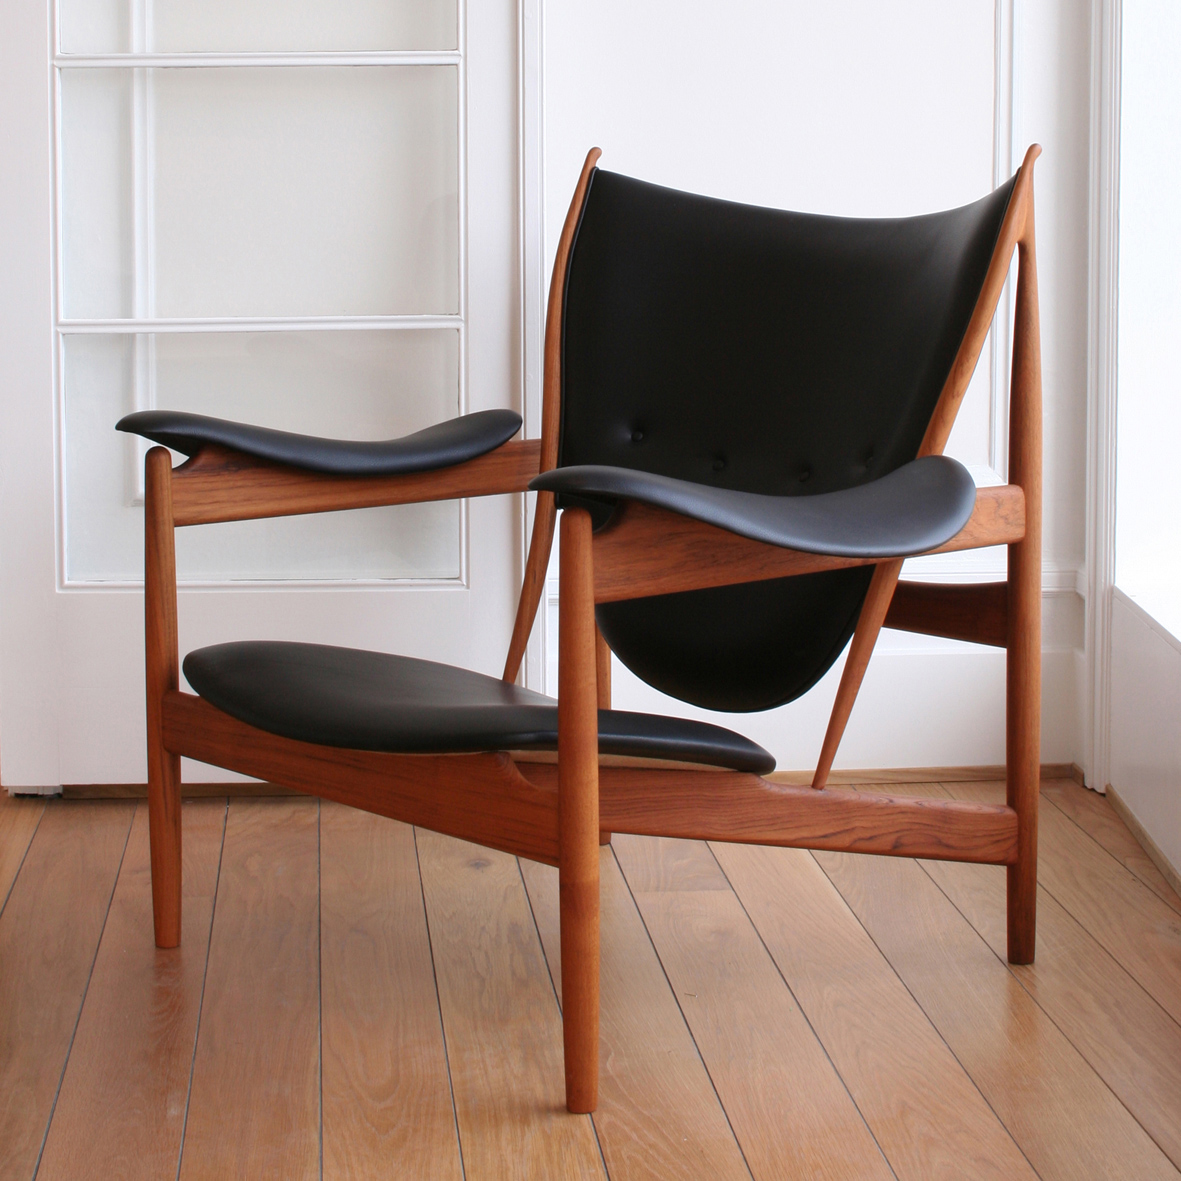 Lovely Chieftains Chair By Finn Juhl   VLiving